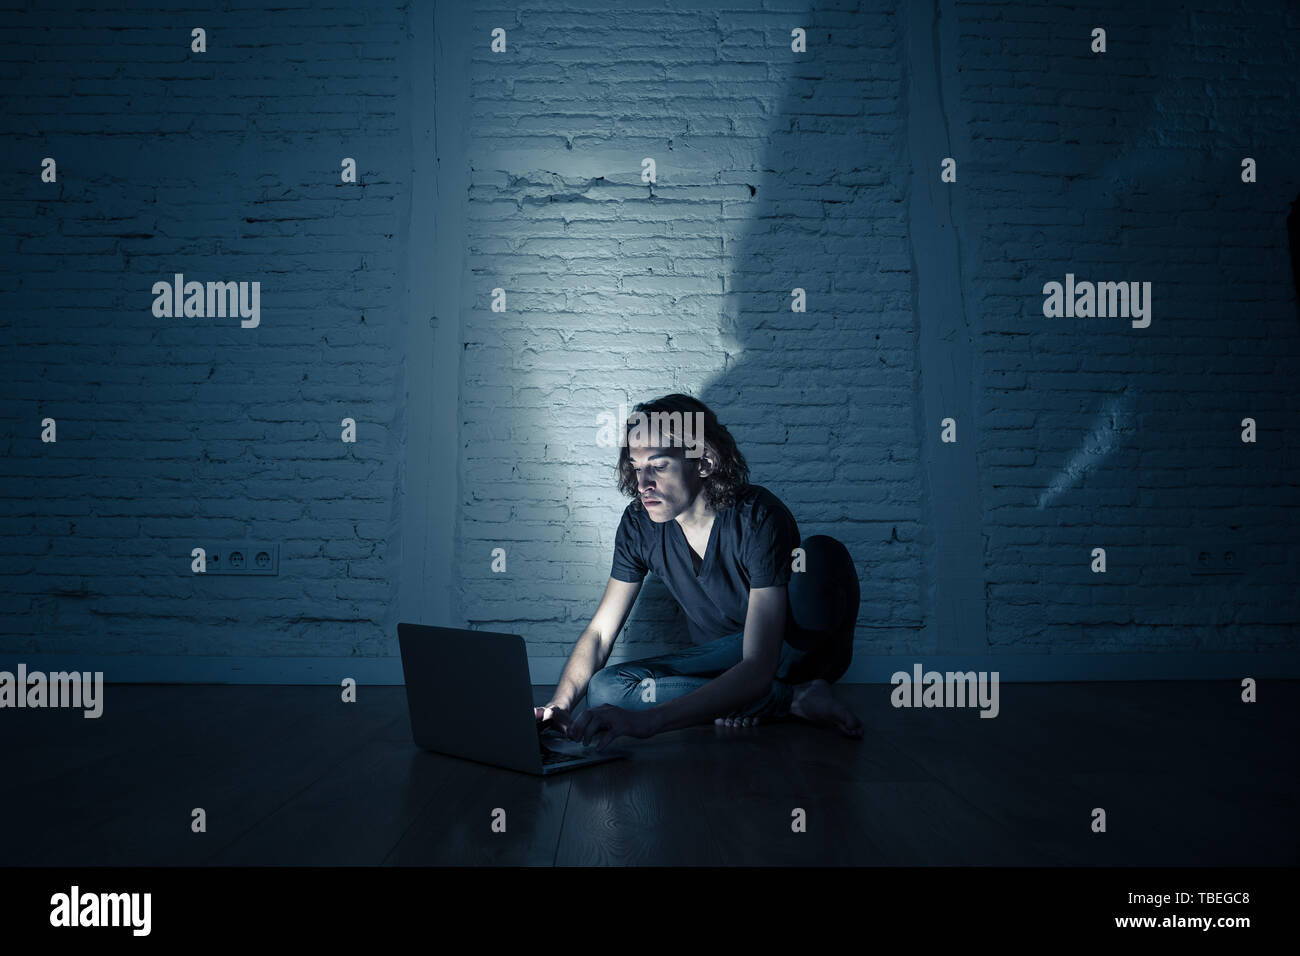 Severely distraught young teen man with laptop suffering cyberbullying and harassment being online abused by stalker or gossip feeling desperate and h - Stock Image